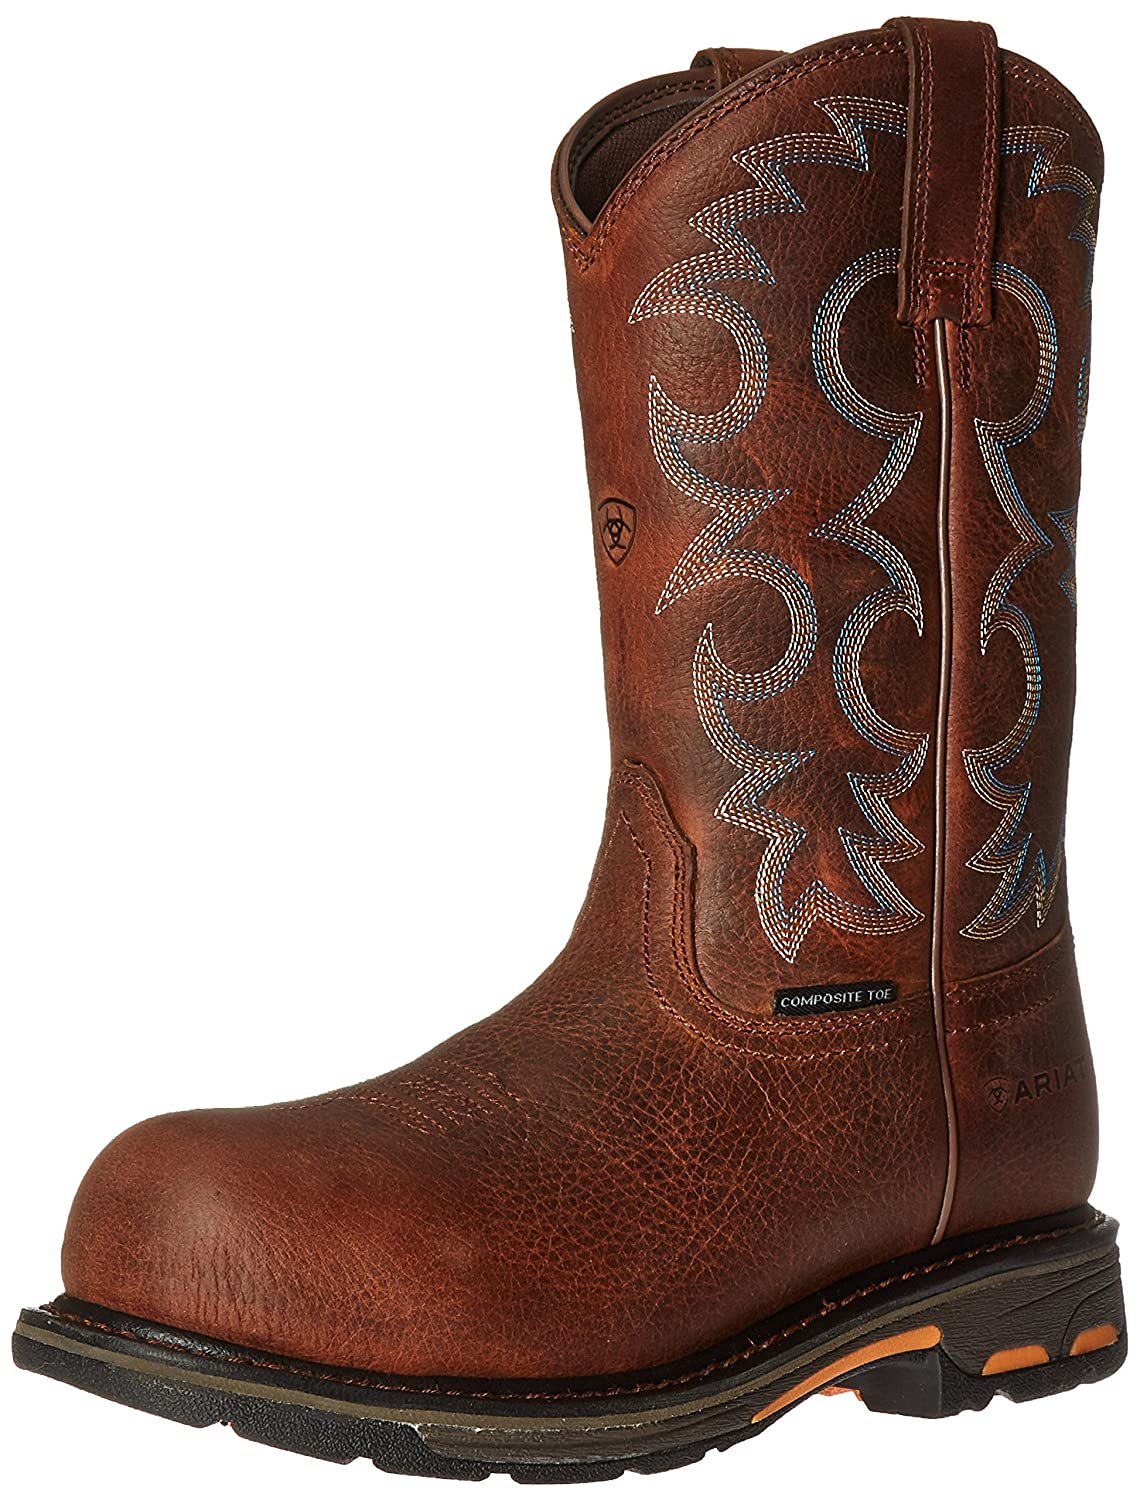 Ariat Women's Workhog Composite 8.5 Toe Work Boot B01BQT6PUC 8.5 Composite W US|Nutty Brown 49a79f